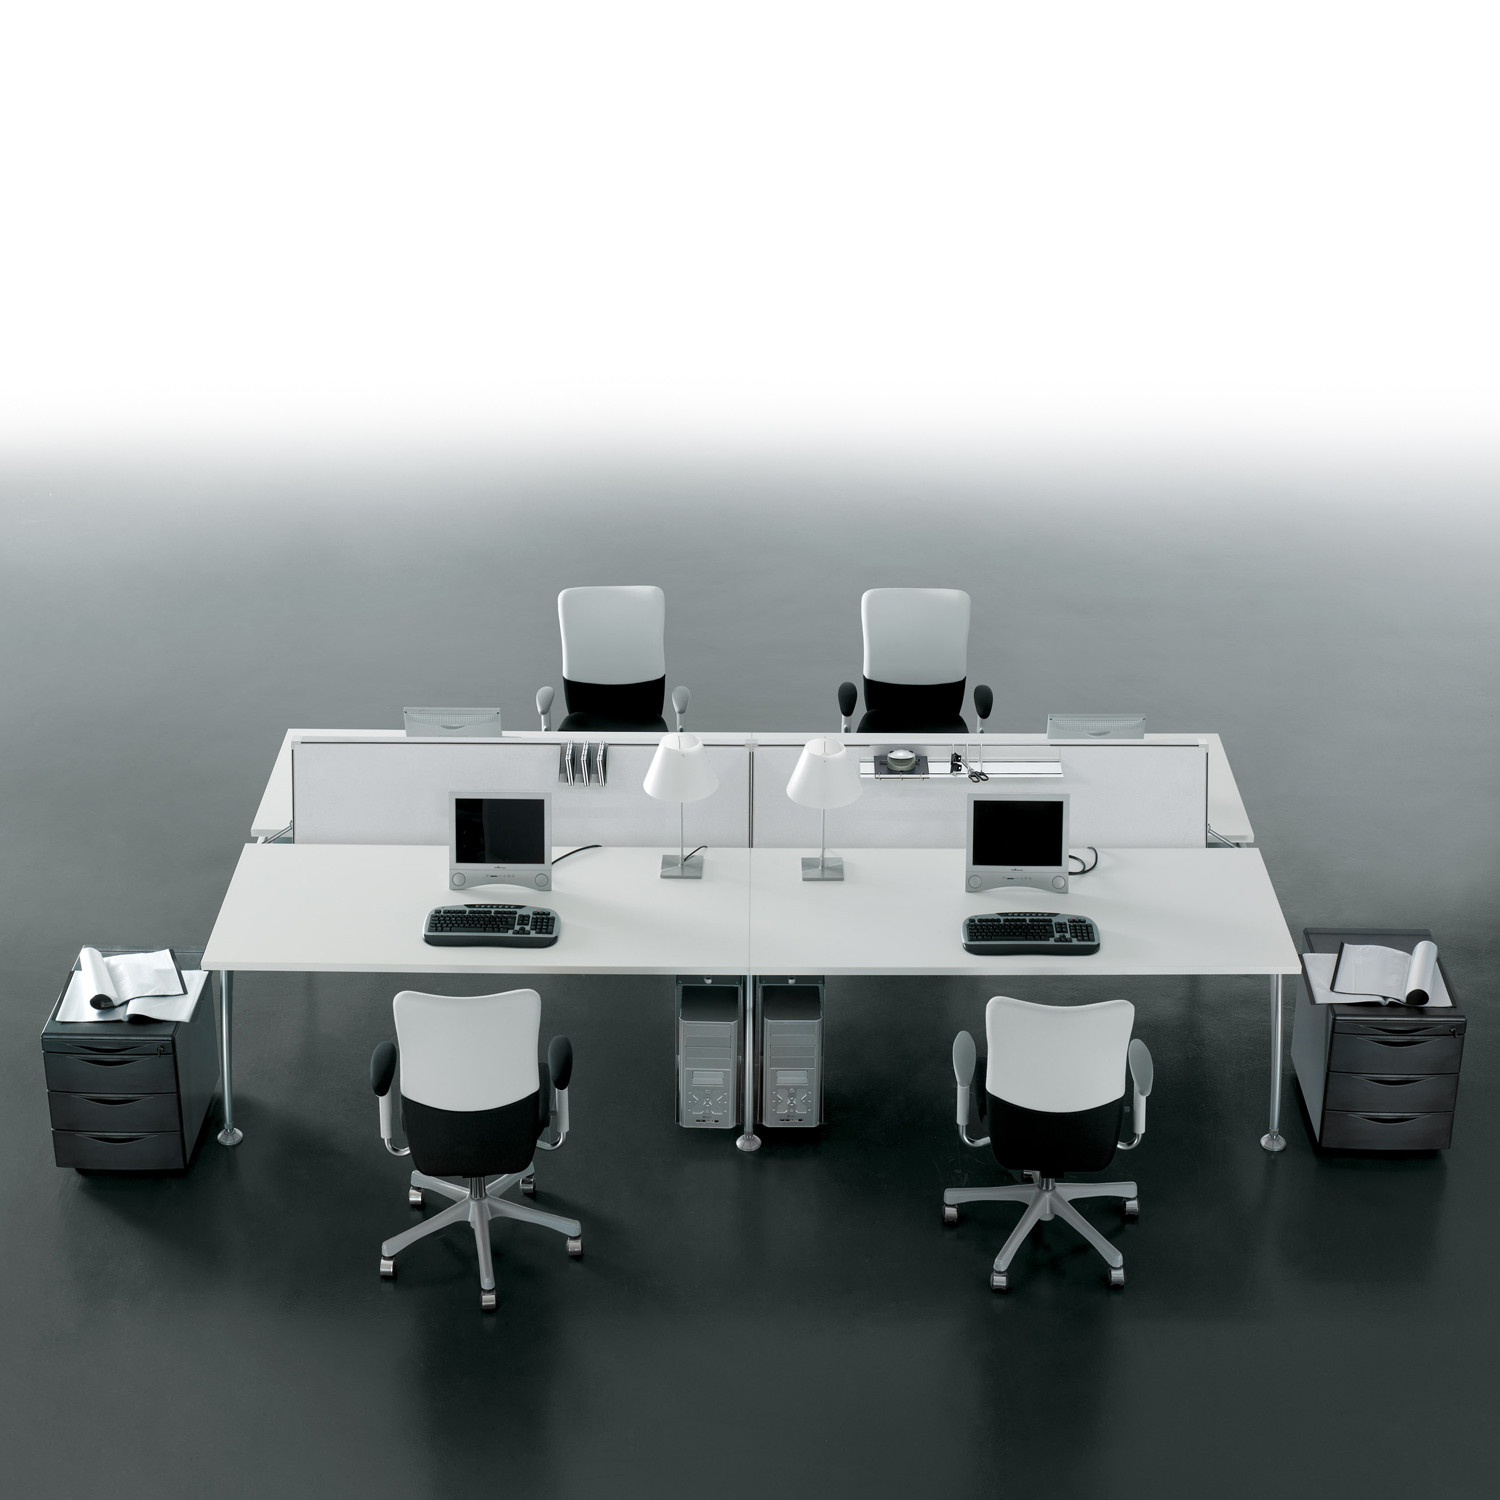 Tiper Modular Desk System is a great solution for open space offices